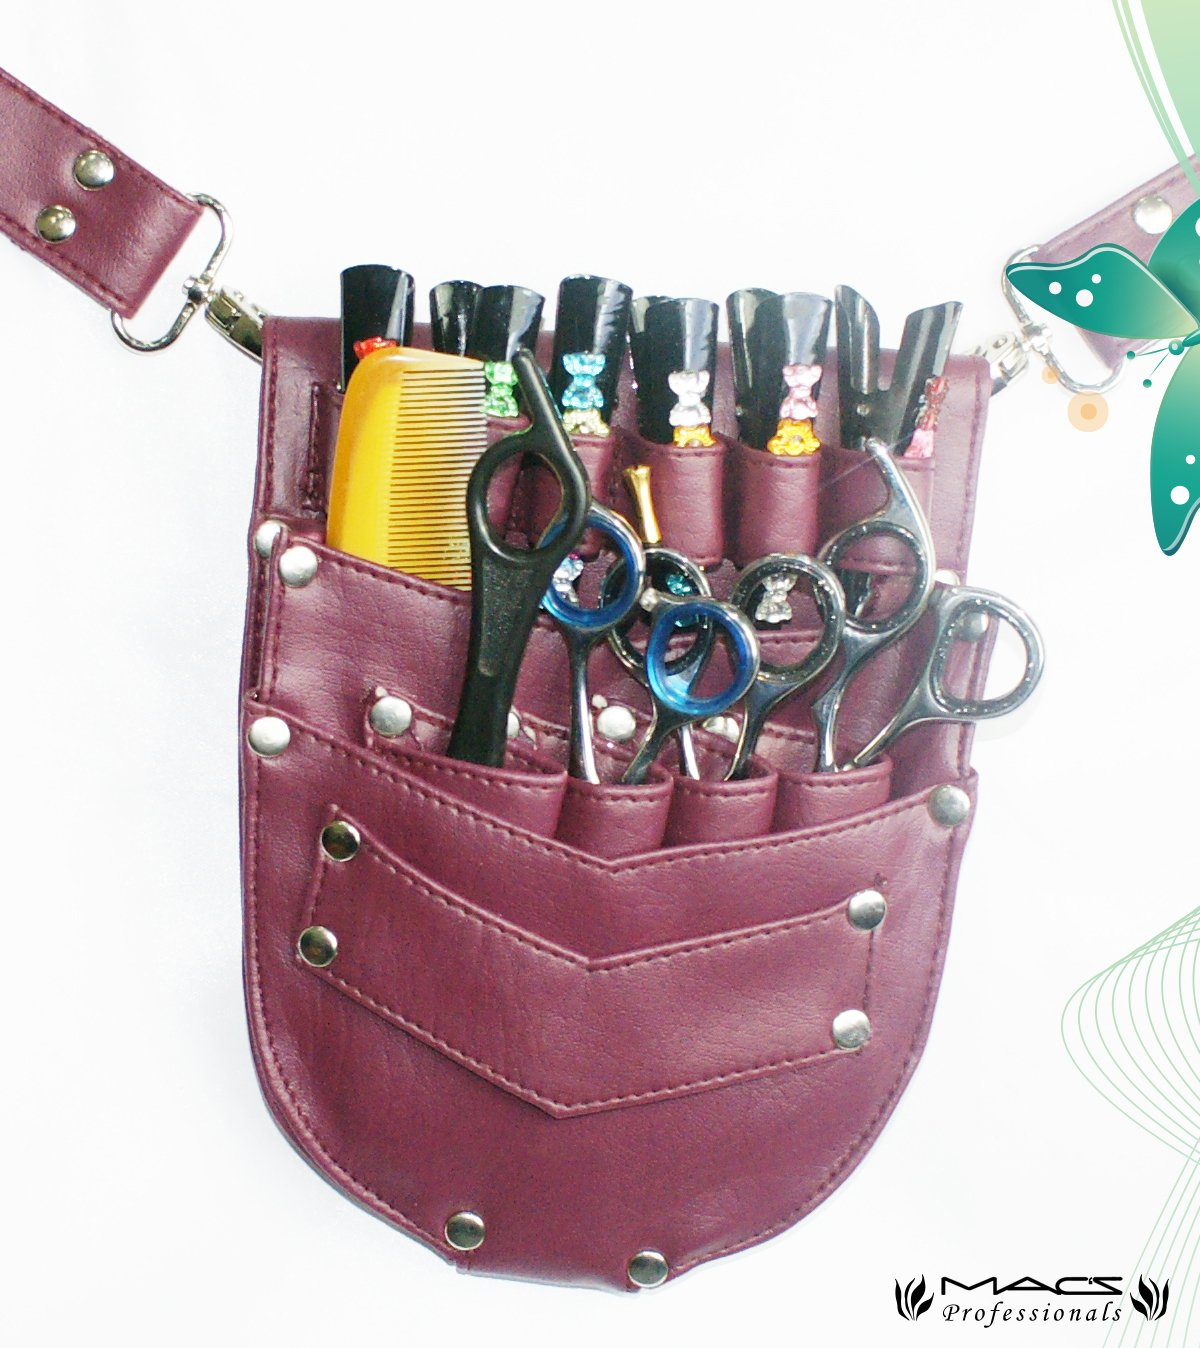 Macs Professional Hair Dressers Scissors Holder Holster /Pouch For Multi, Personal And Professional Use -174 Artificial Hair On leather